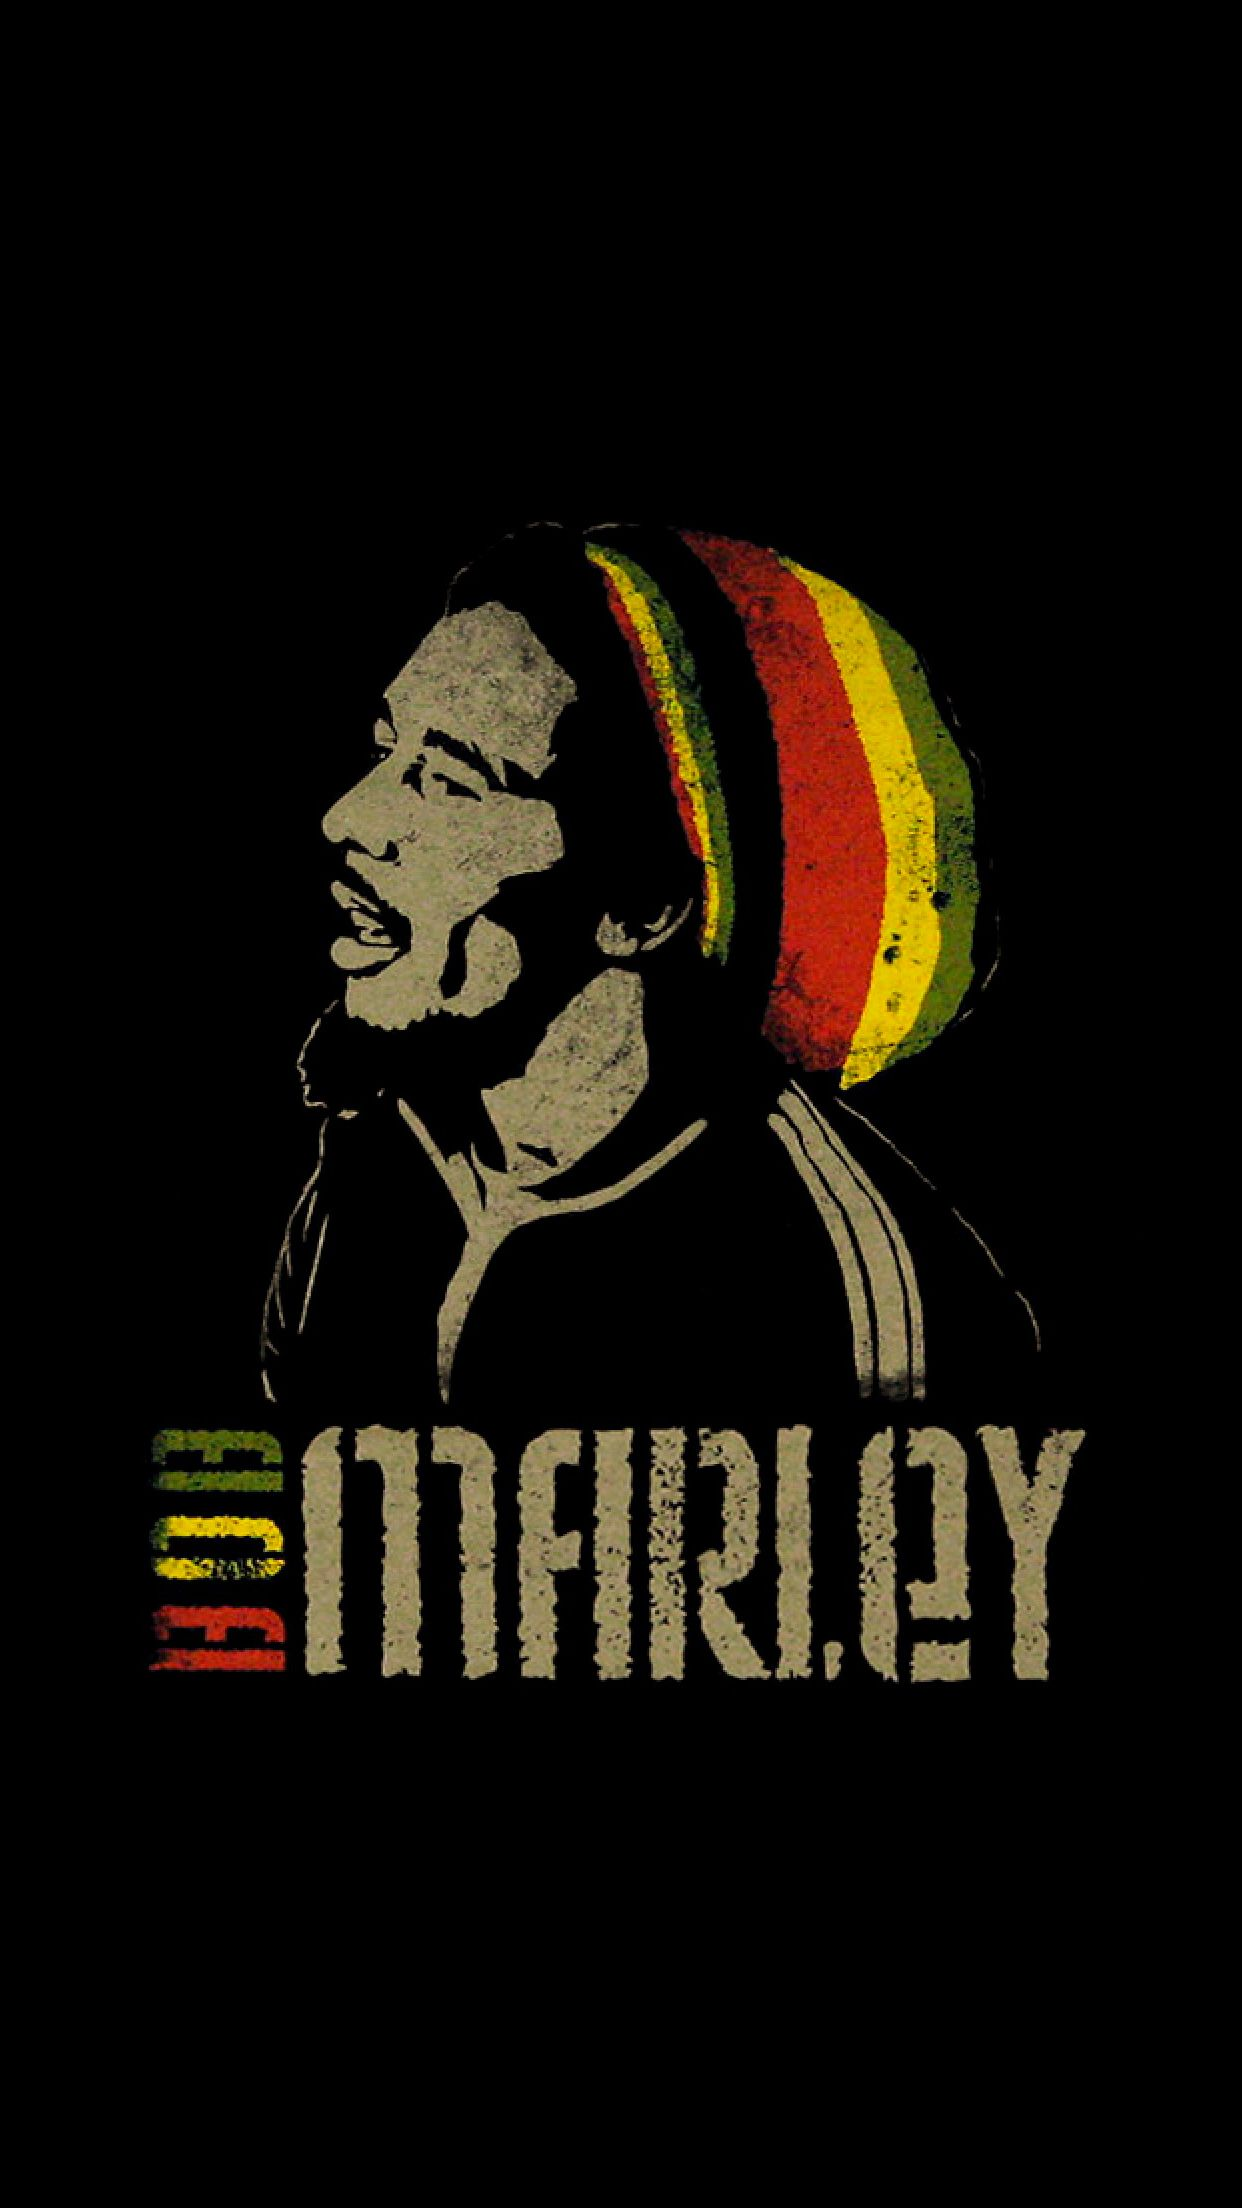 1242x2208 Bob Marley Wallpaper for iPhone X, 8, 7, 6 - Free Download ...